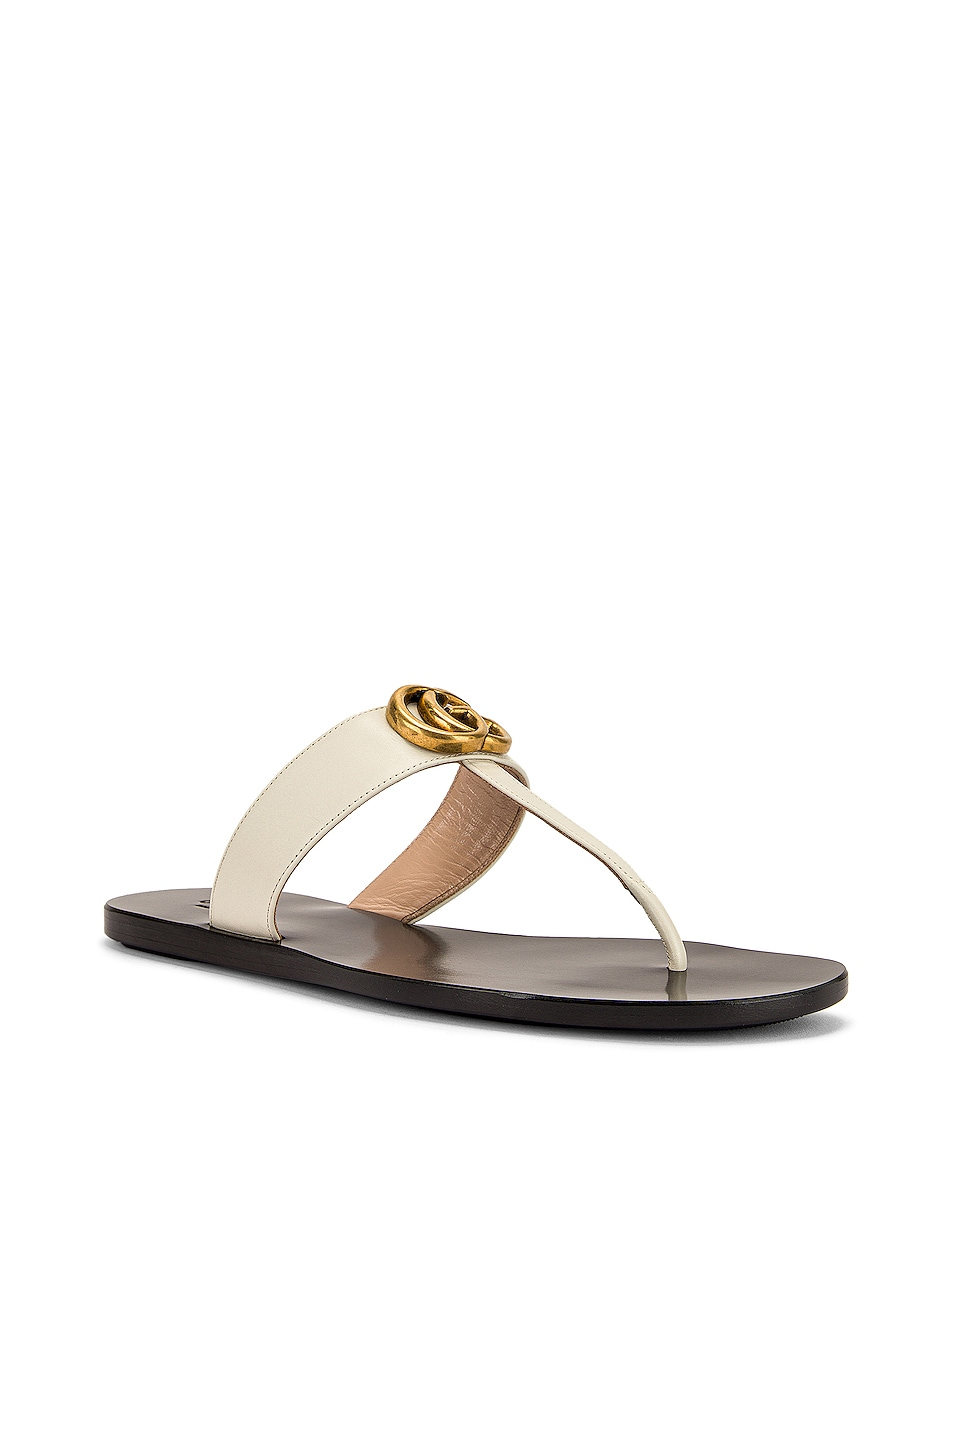 Image 3 of Gucci Marmont Thong Sandals in Mystic White